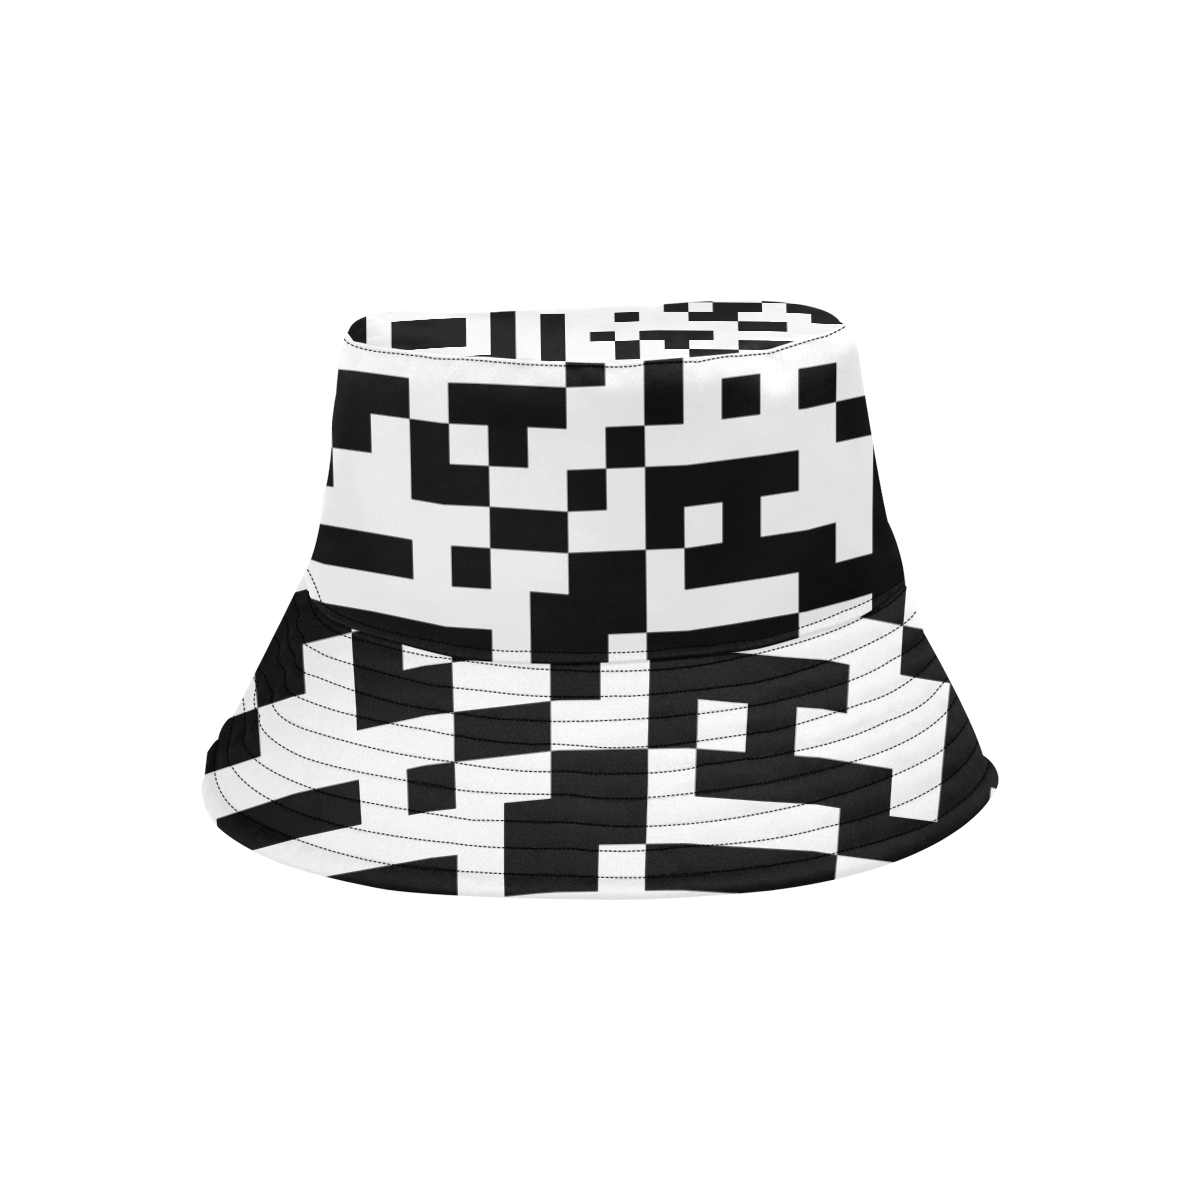 ABSTRACT LADYLIKE All Over Print Bucket Hat